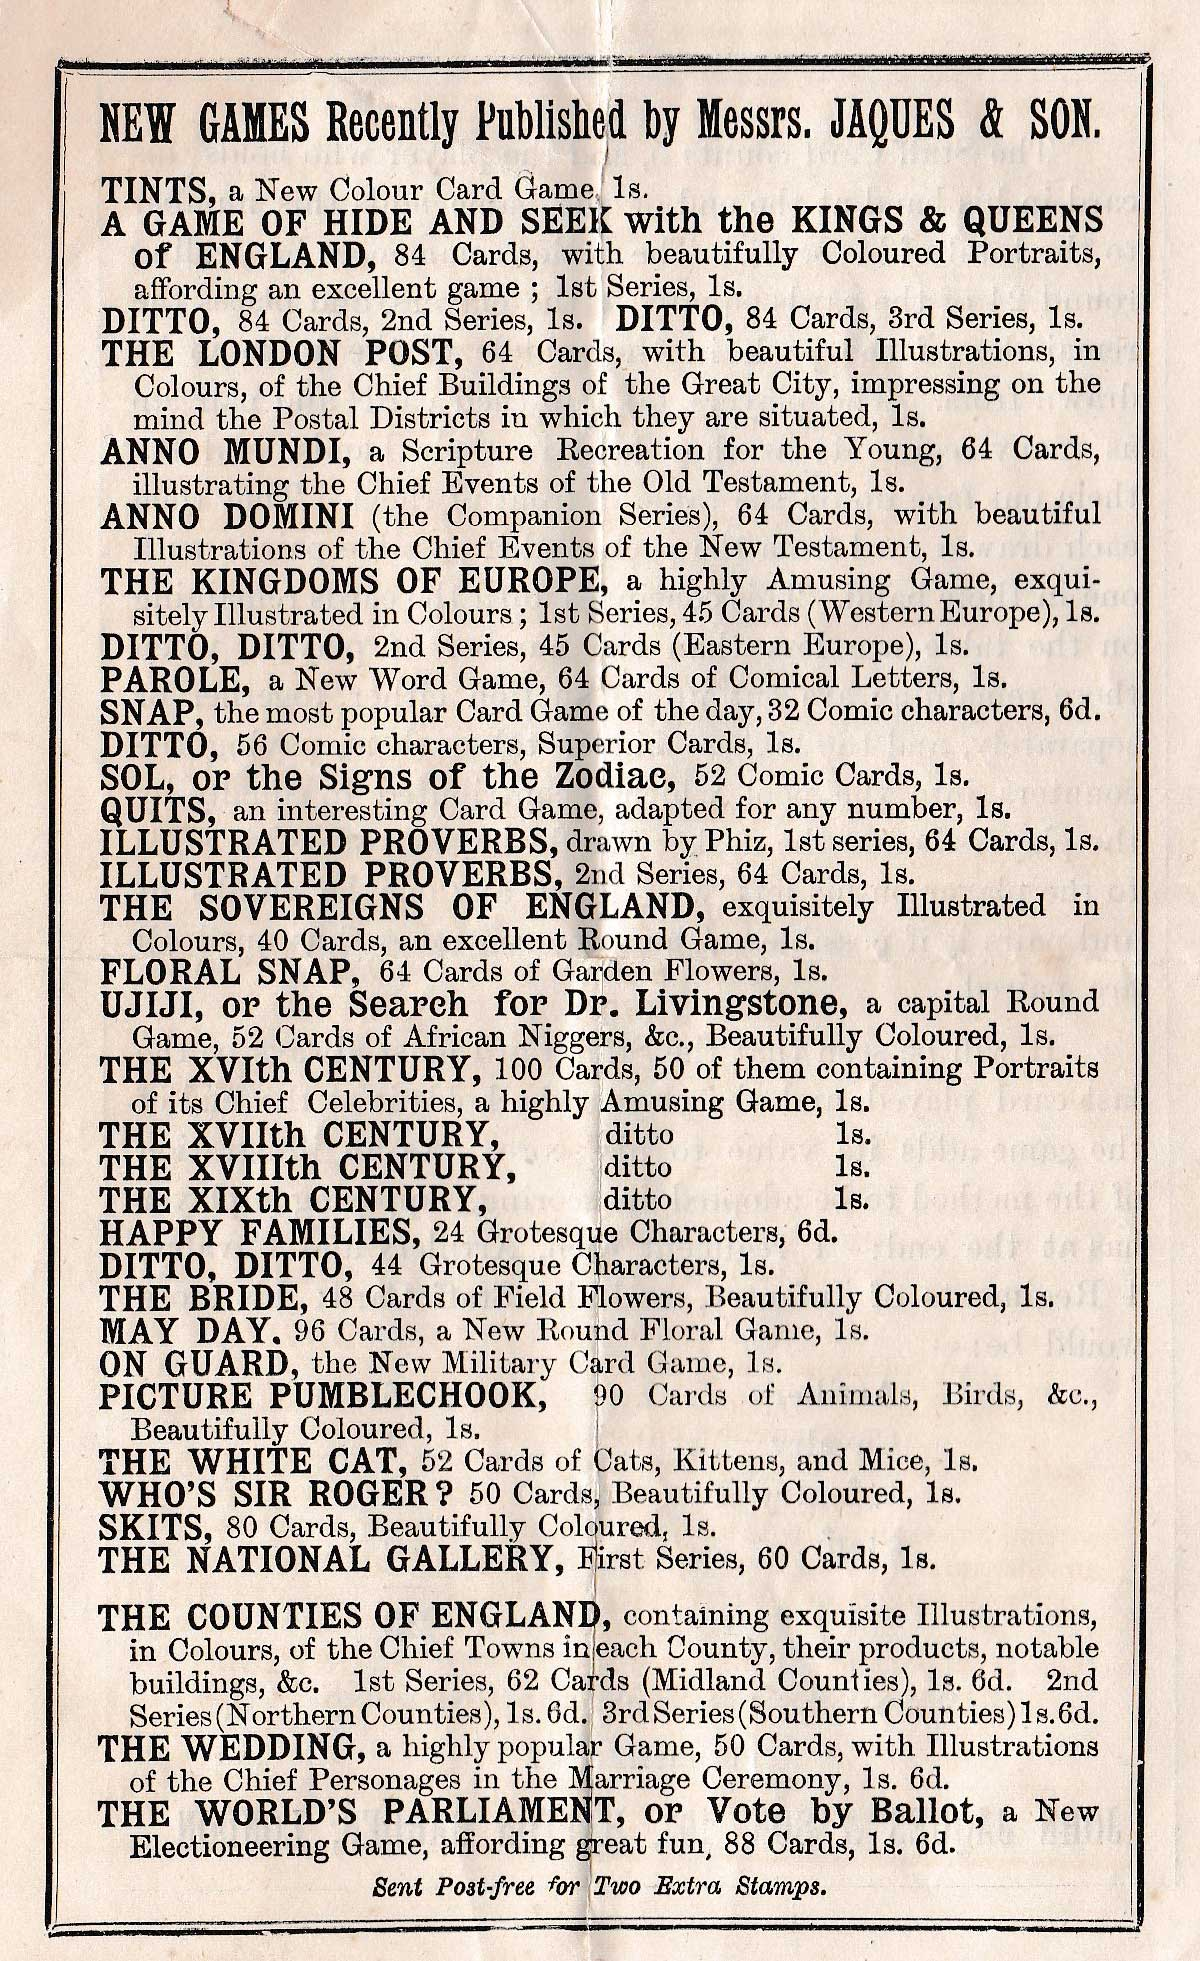 list of new games, c.1875